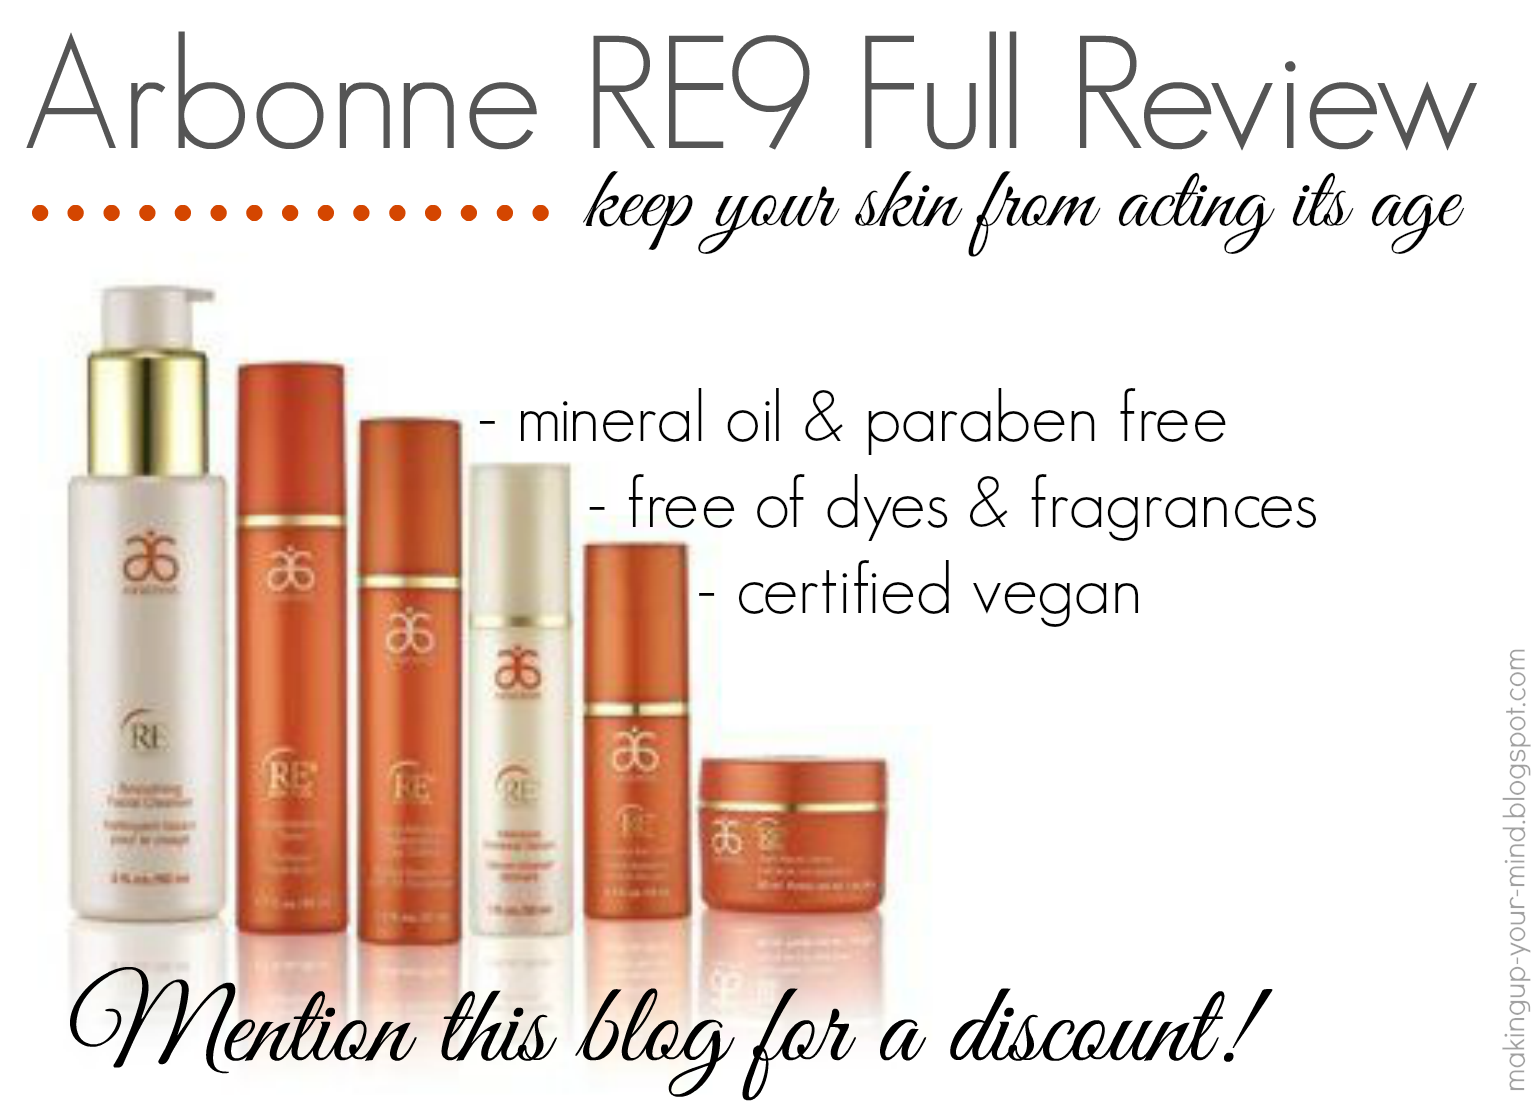 Arbonne re9 full review mention this post for 10 off